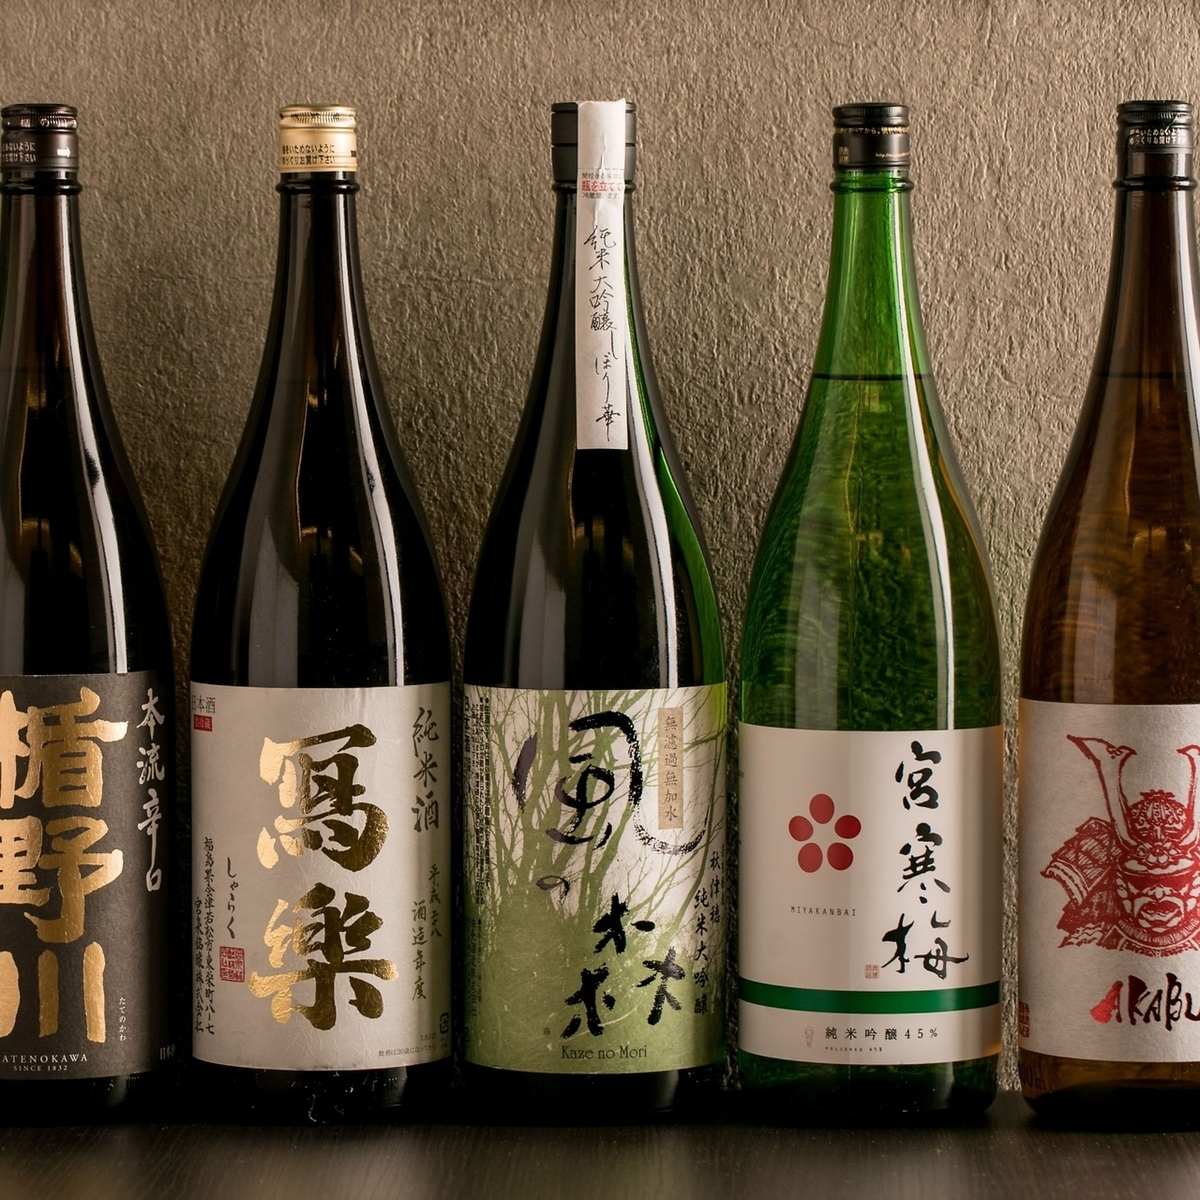 【Commitment sake】 More than 20 kinds of local sake selected carefully from all over the country